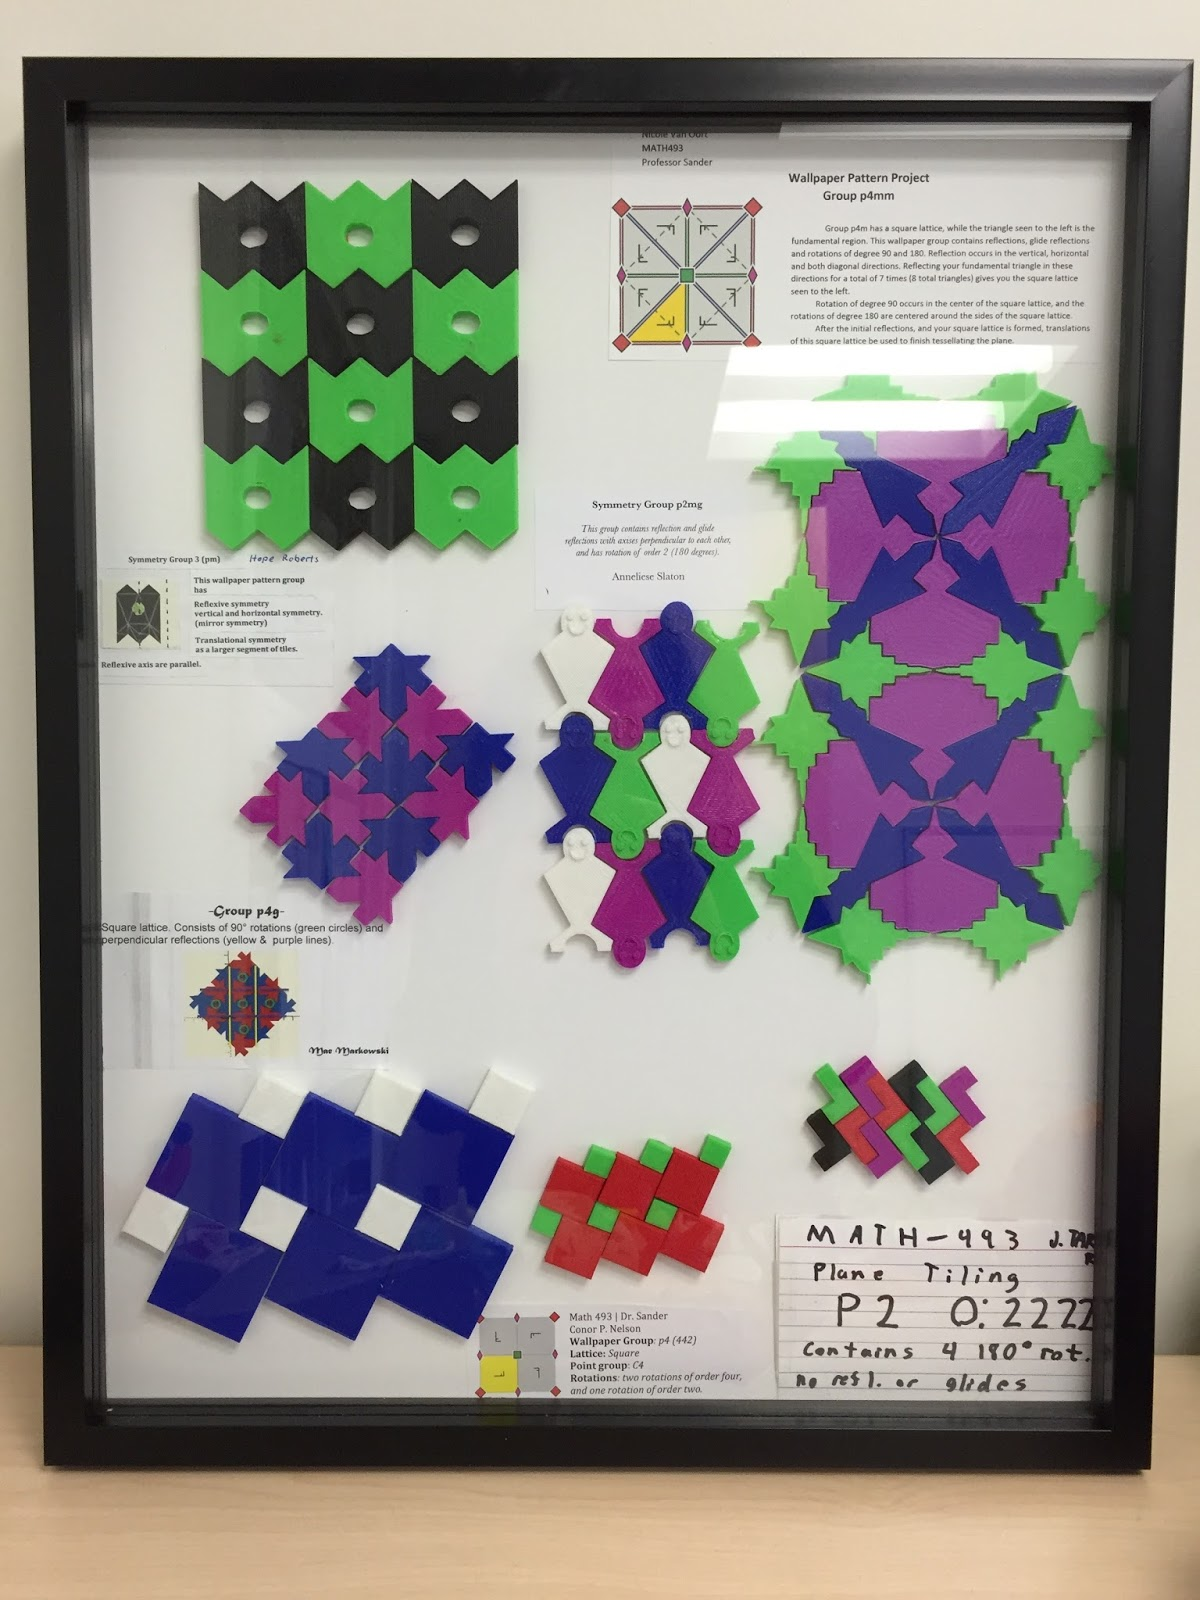 Color printing gmu - Wallpaper Groups And Their Symmetries Any Pattern That Can Be Repeated In A Repeatable Fashion Throughout The Entire Infinite Plane Is Mathematically